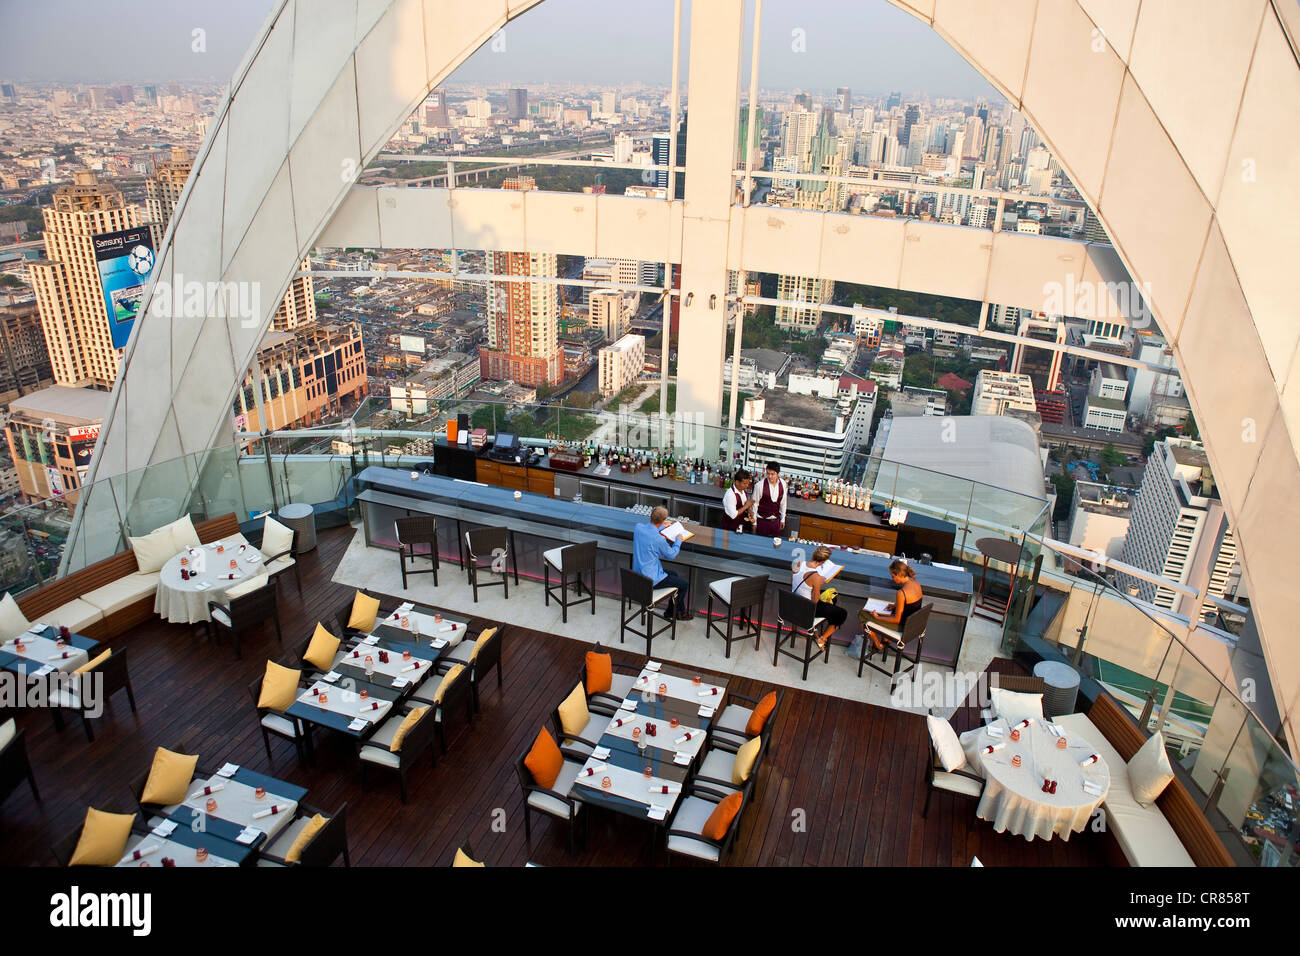 Thailand, Bangkok, Siam square district, the Red Sky Bar on the 55th floor of the Hotel Central World - Stock Image